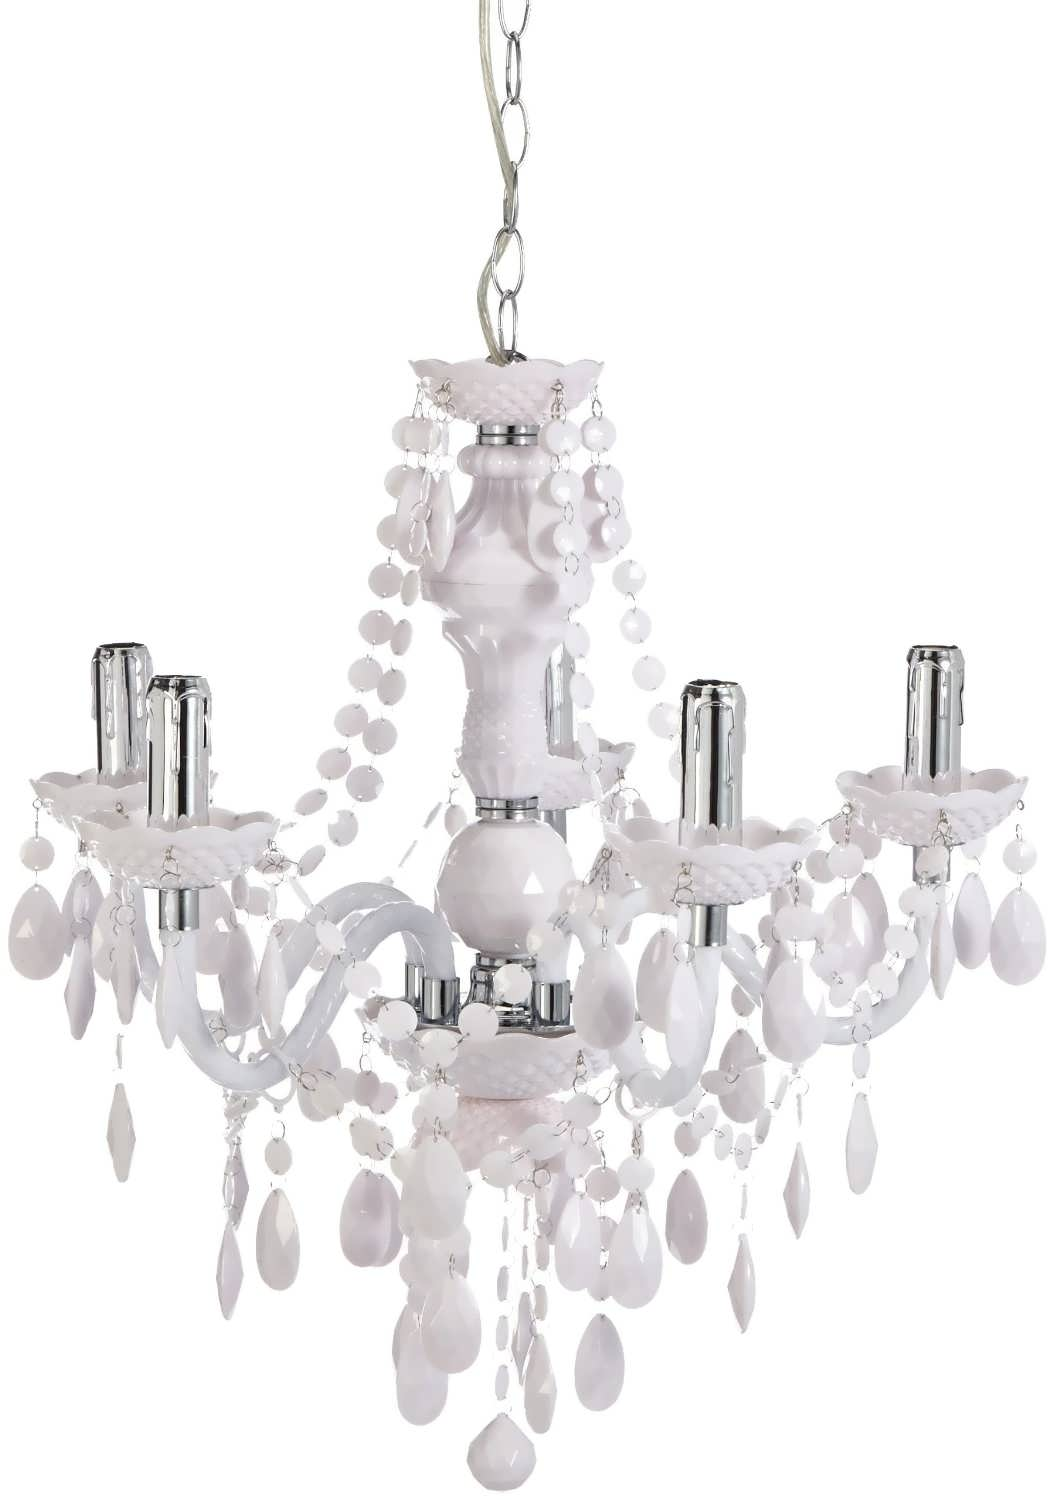 Chandelier Globe Replacements | Glass Chandelier Shades | Clear Glass Lamp Shades Replacement